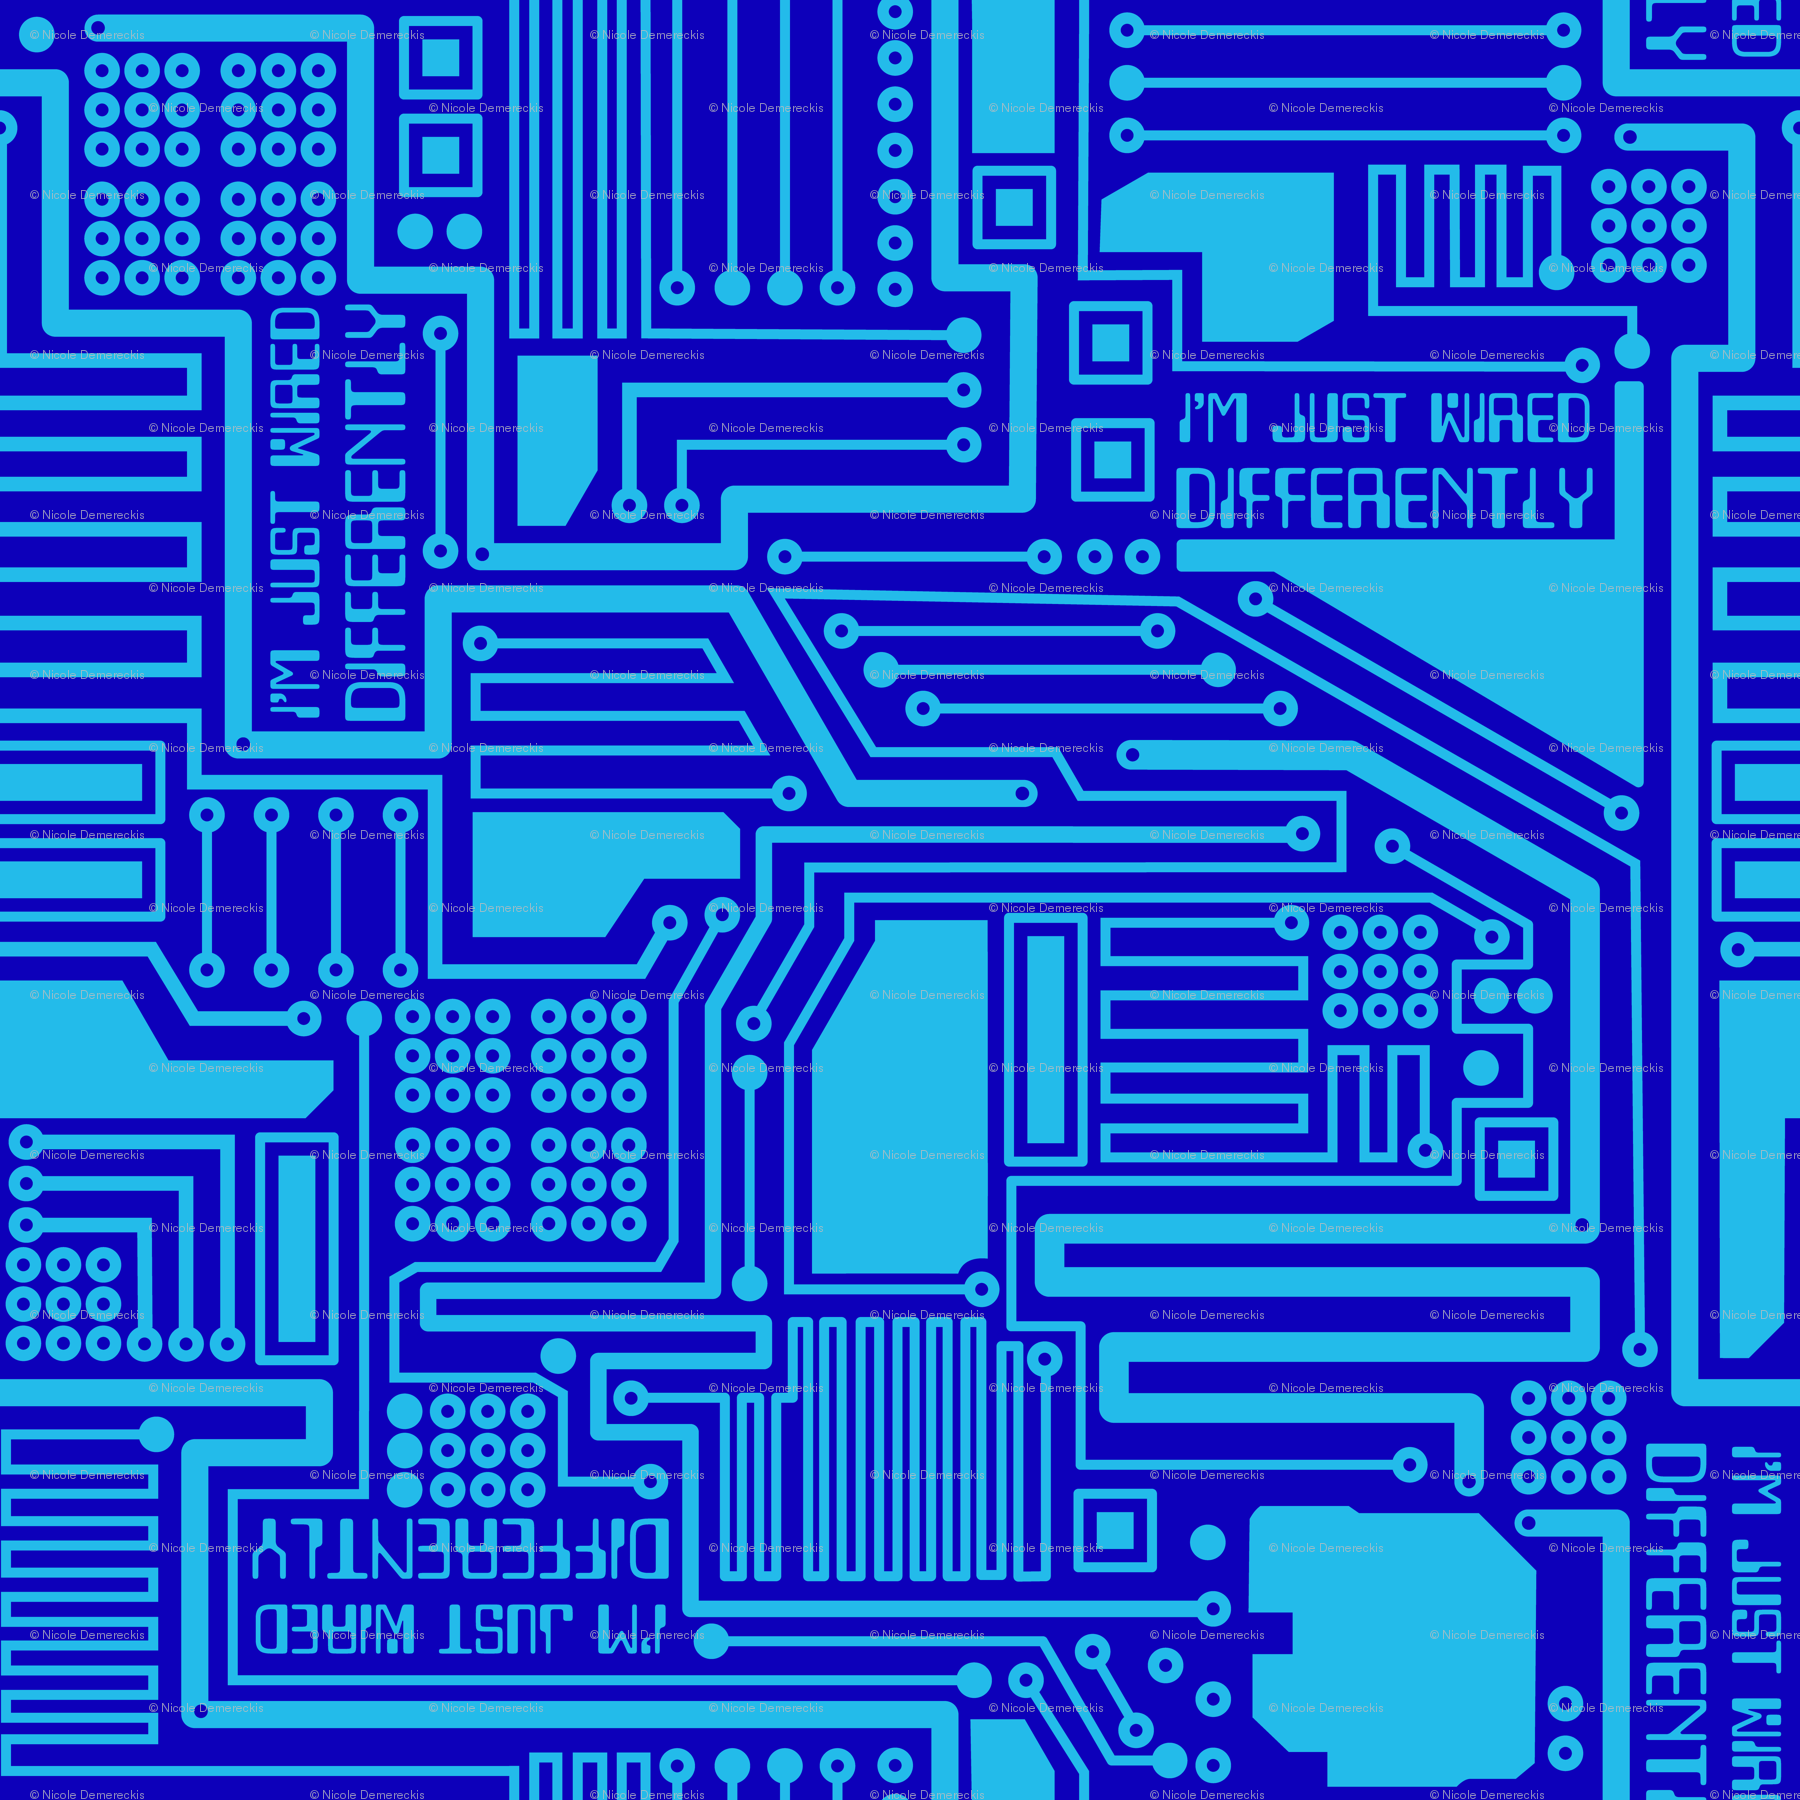 Im Just Wired Differently Blue fabric - wickedrefined - Spoonflower